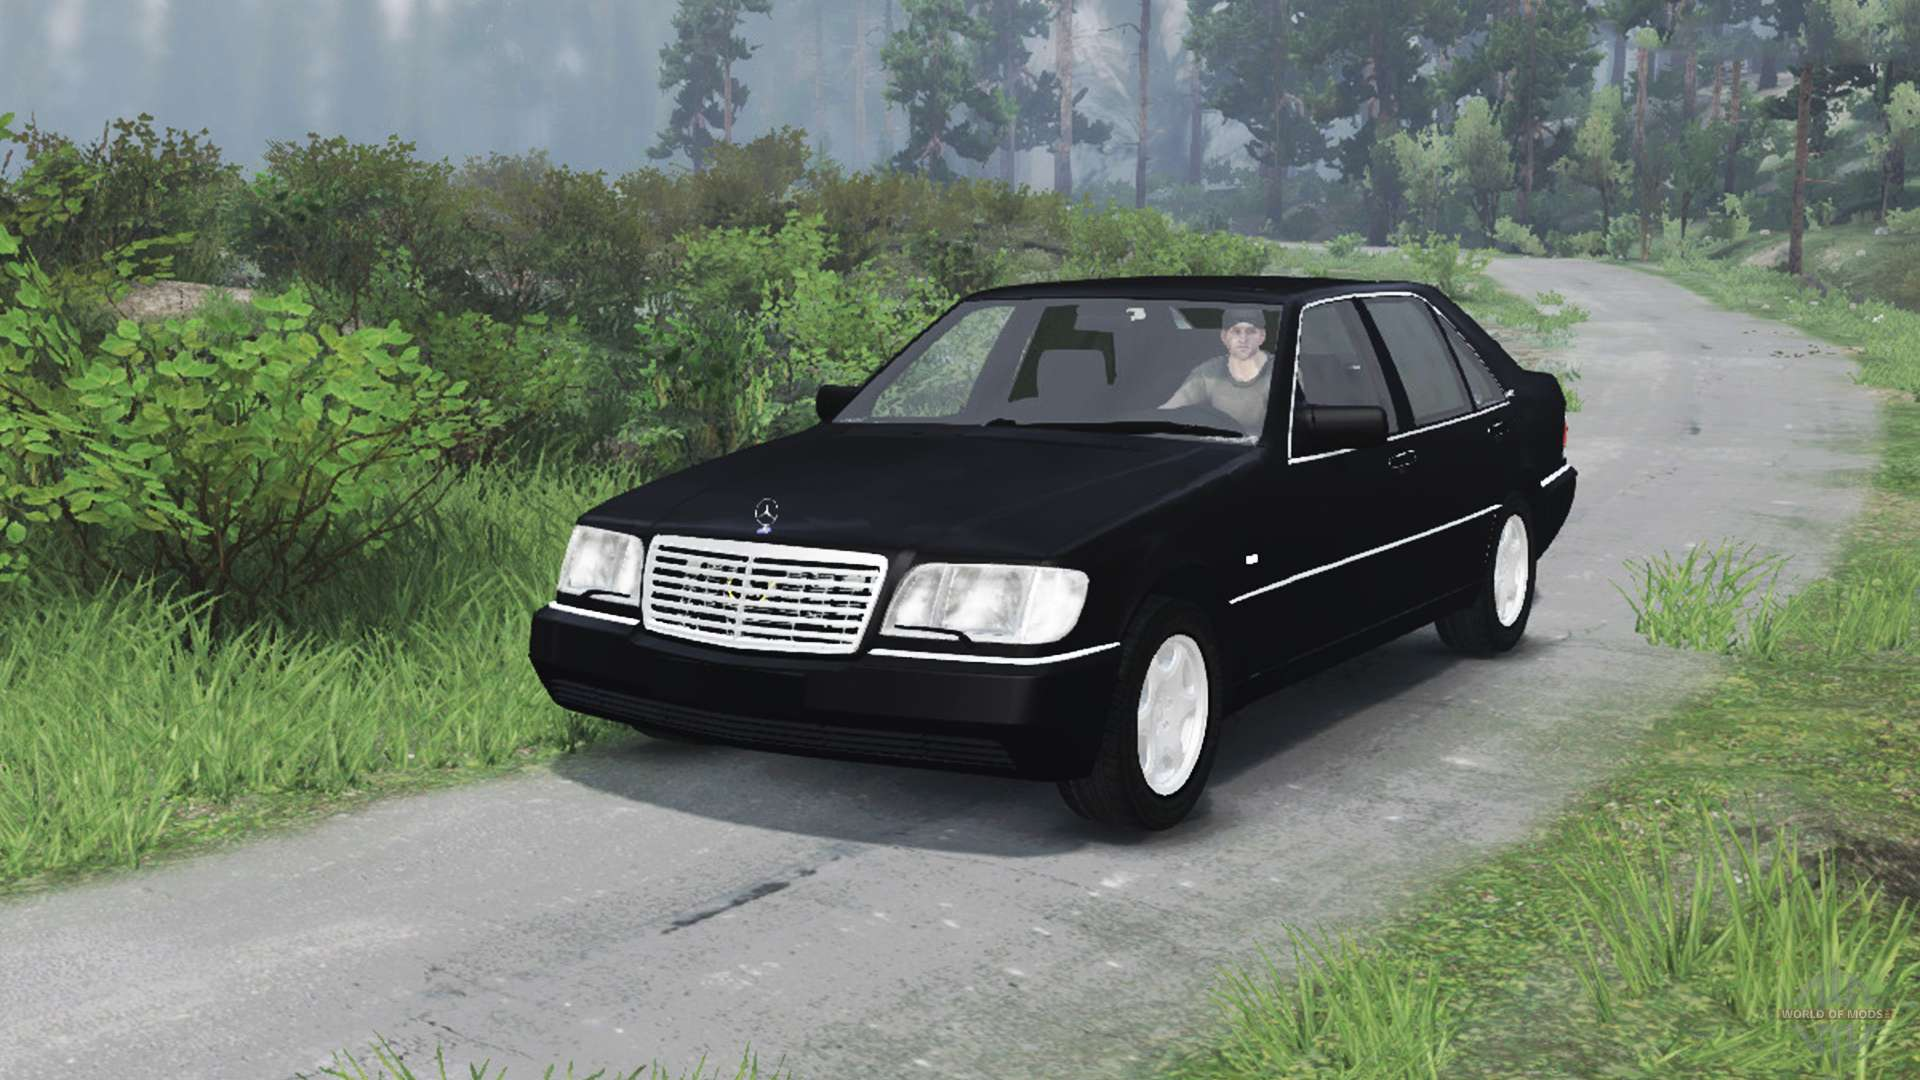 mercedes benz for spintires download for free \u2014 page 2mercedes benz s600 (w140)[03 03 16] for spin tires